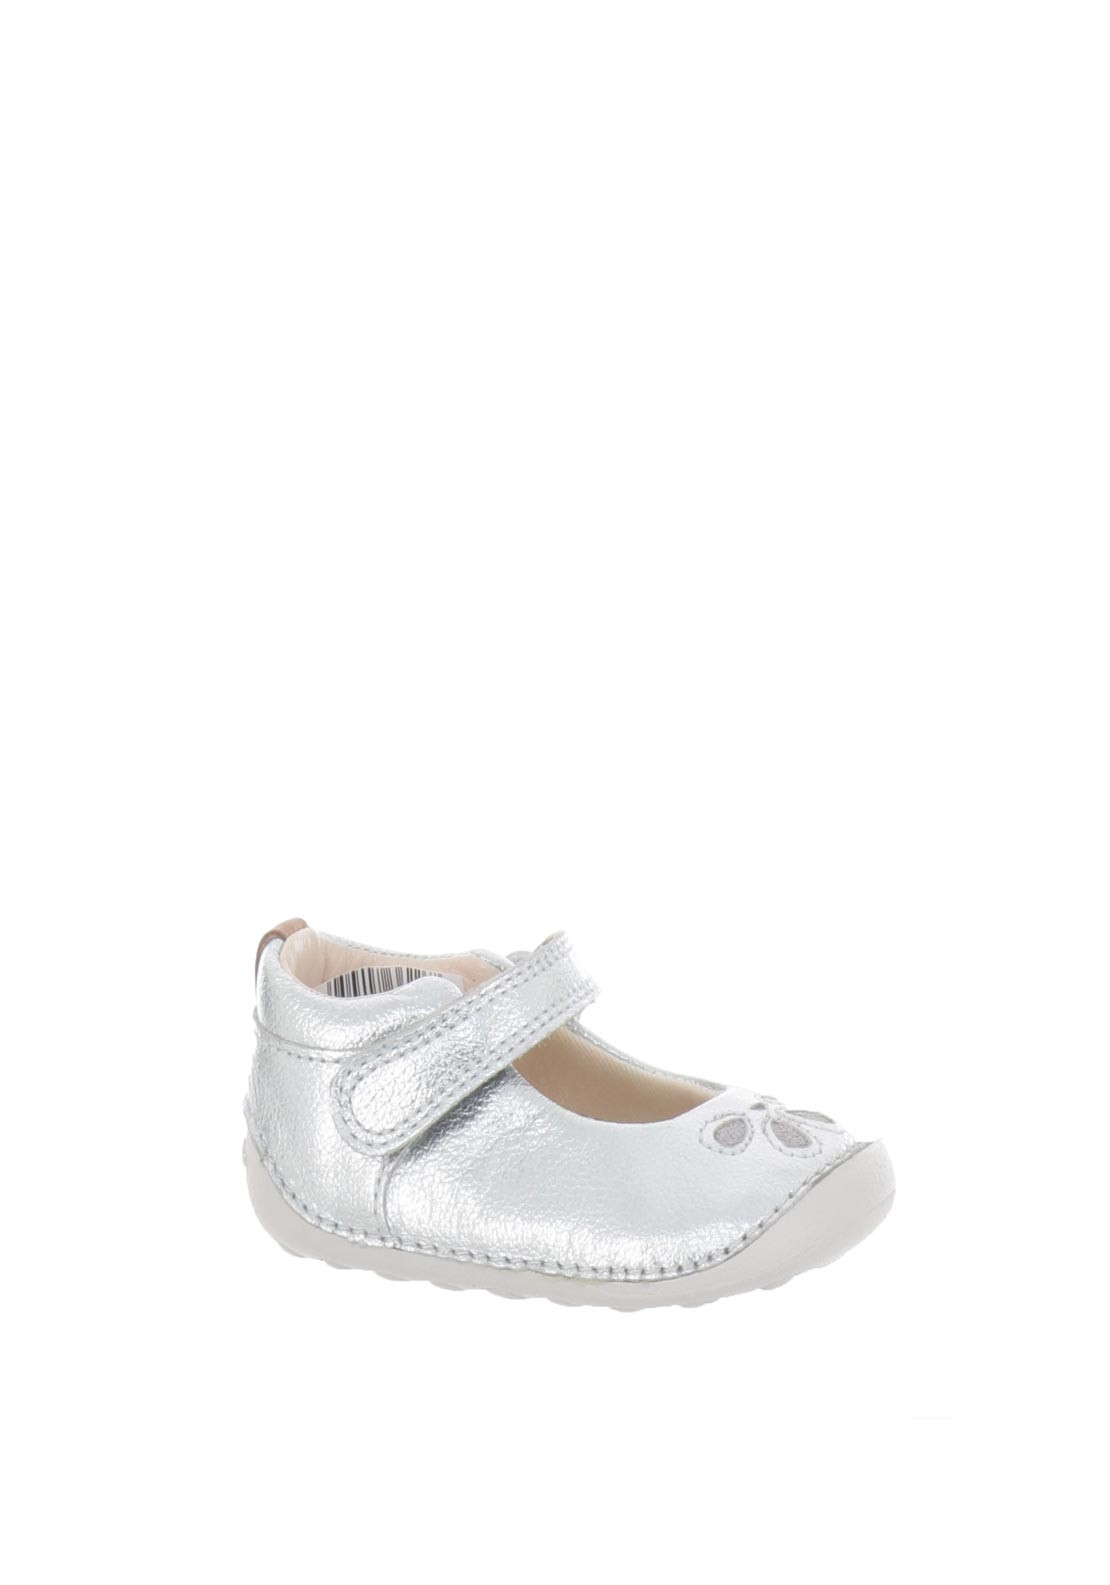 outlet on sale amazing quality choose clearance Clarks Baby Girls Tiny Eden Leather Pre-Walking Shoes, Silver